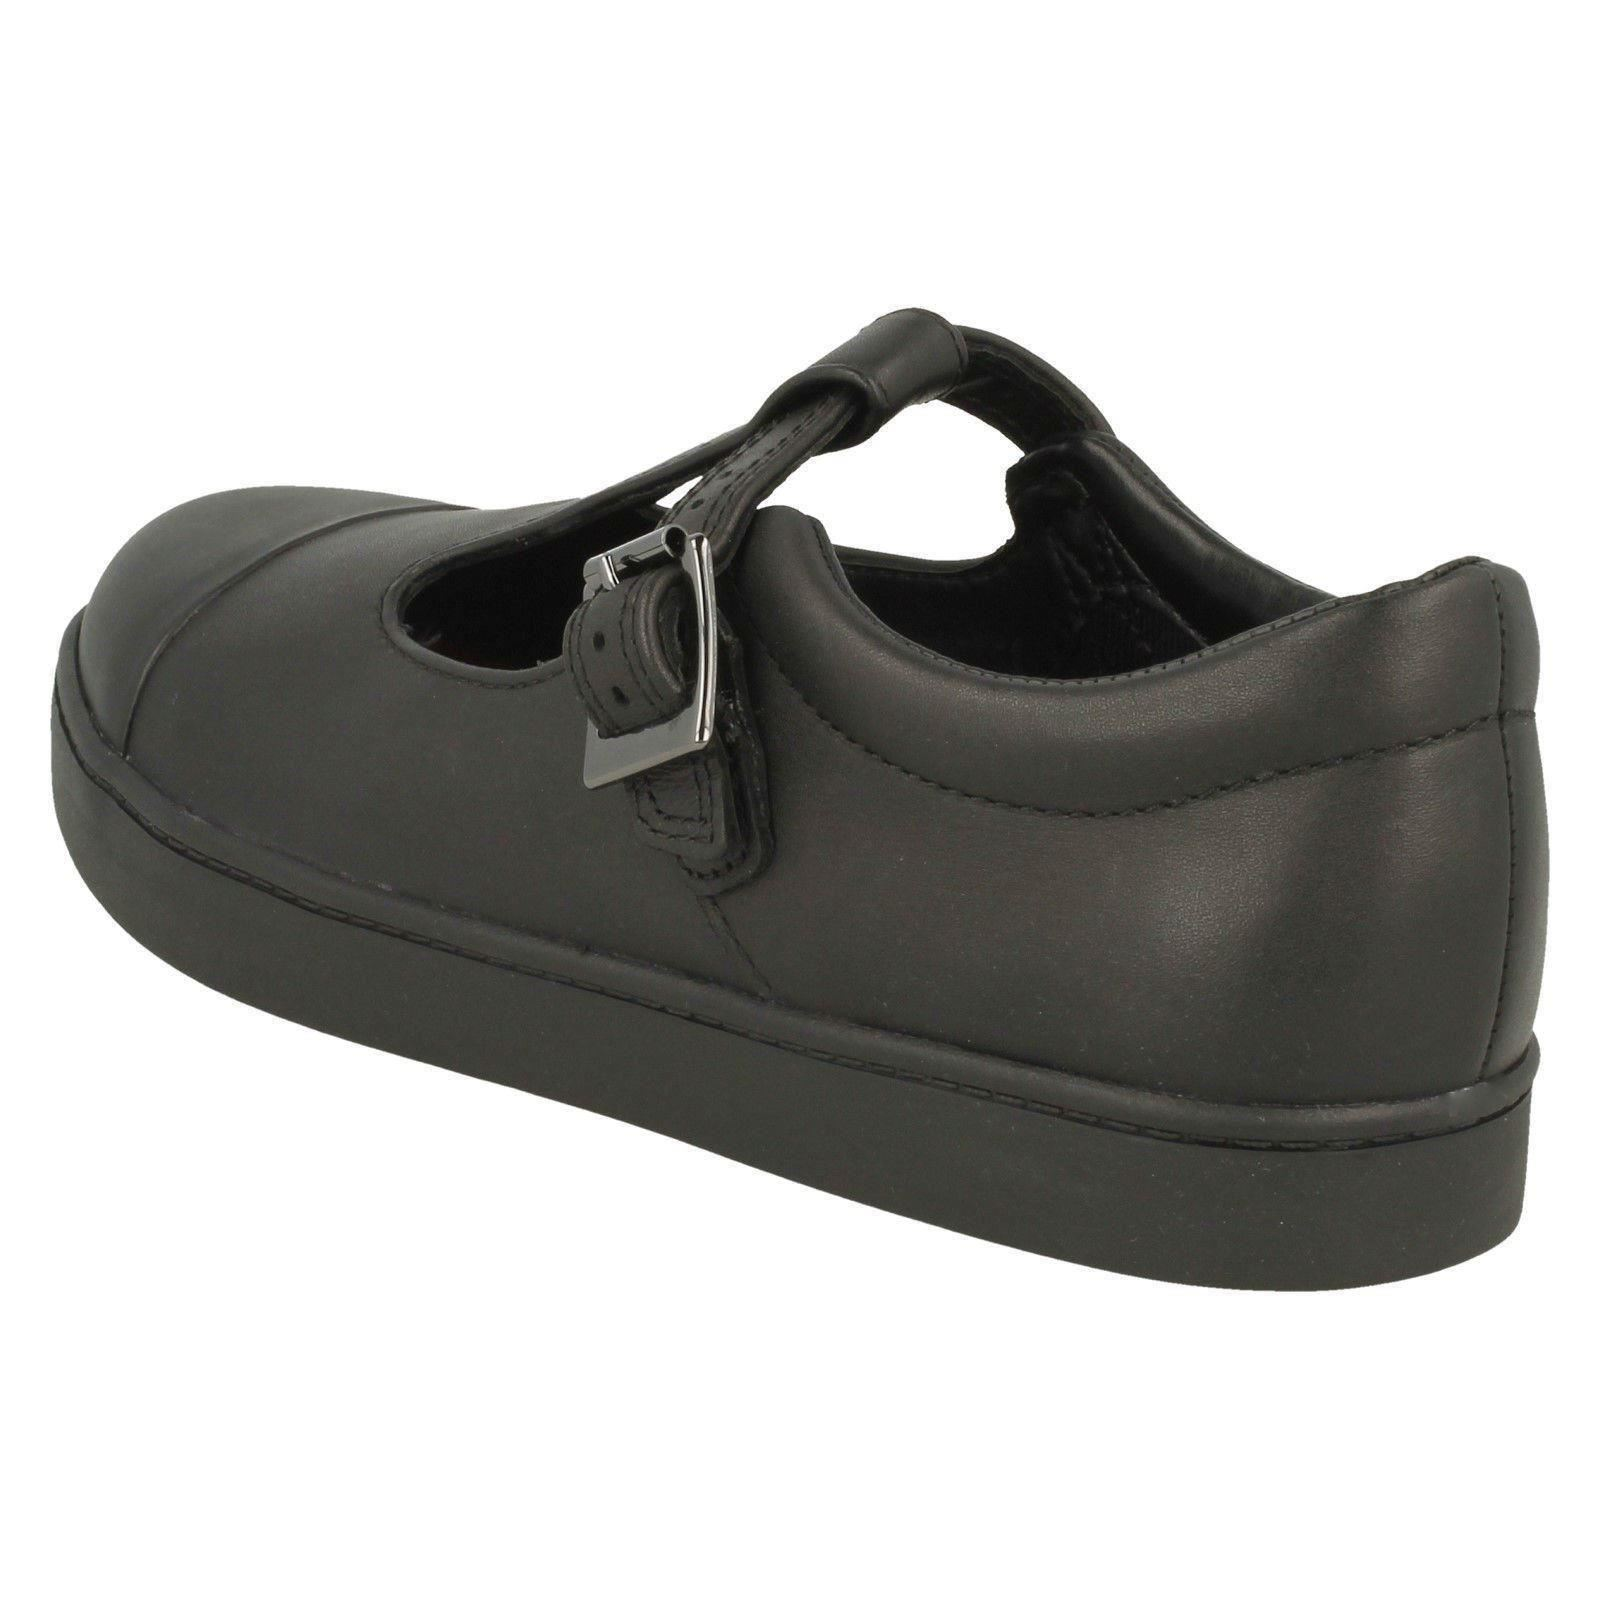 Black City Girls Tea Scarpe Clarks da bar scuola T WxnaqTURw6